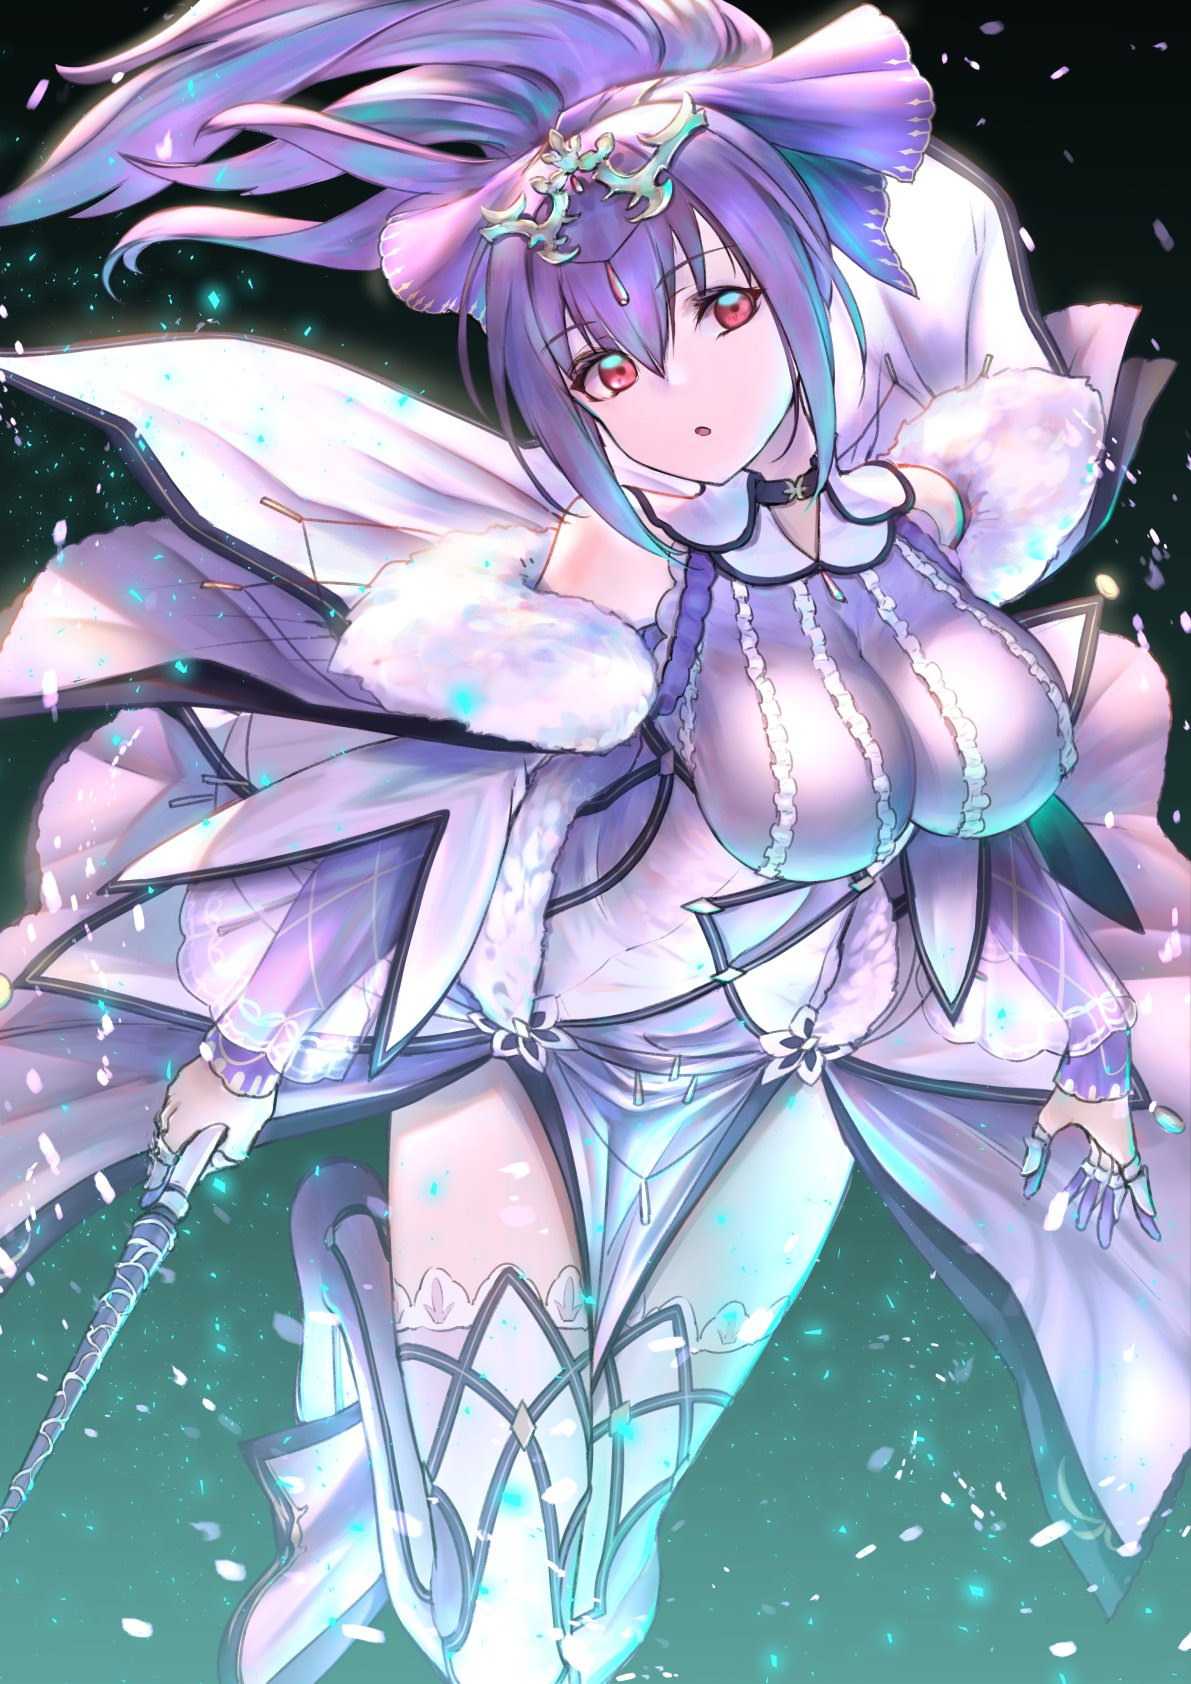 1girl :o bangs boots breasts dress fate/grand_order fate_(series) fur-trimmed_dress fur_trim hair_between_eyes headpiece highres holding holding_wand itaco1987 large_breasts looking_to_the_side open_mouth ponytail purple_dress purple_hair purple_ribbon red_eyes ribbon runes scathach_(fate)_(all) scathach_skadi_(fate/grand_order) solo thigh-highs thigh_boots tiara wand